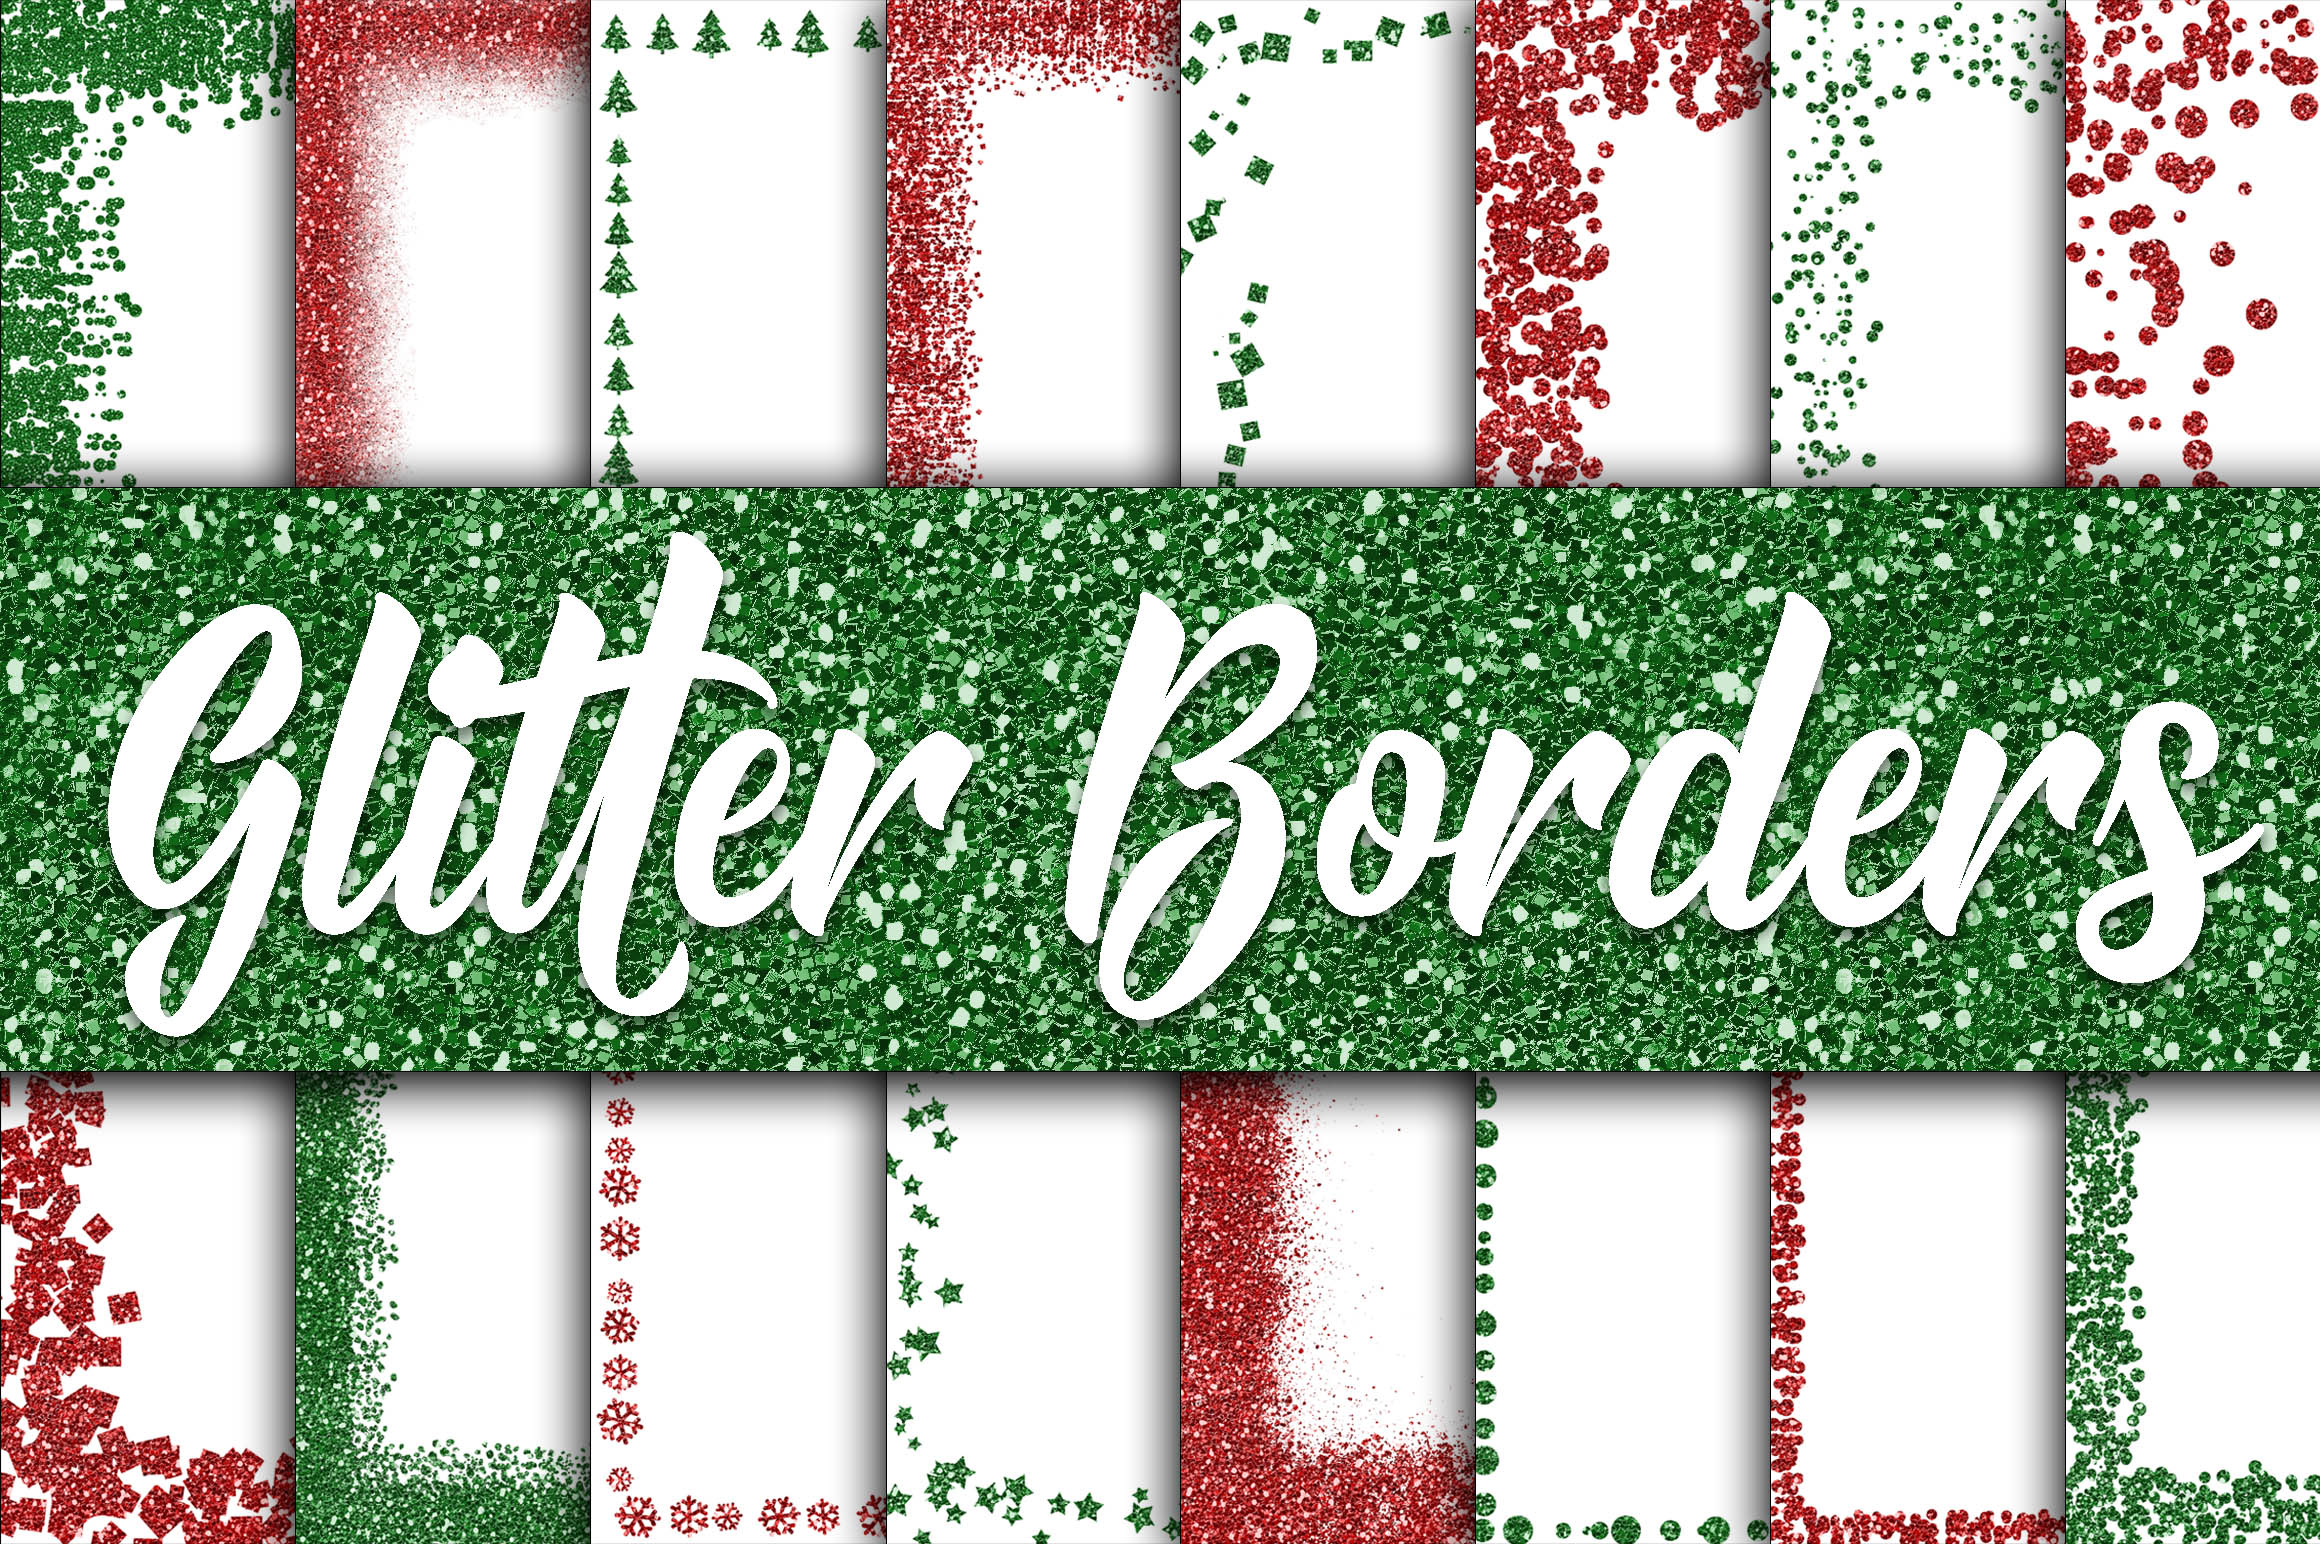 Christmas Glitter Borders Digital Paper Graphic Backgrounds By oldmarketdesigns